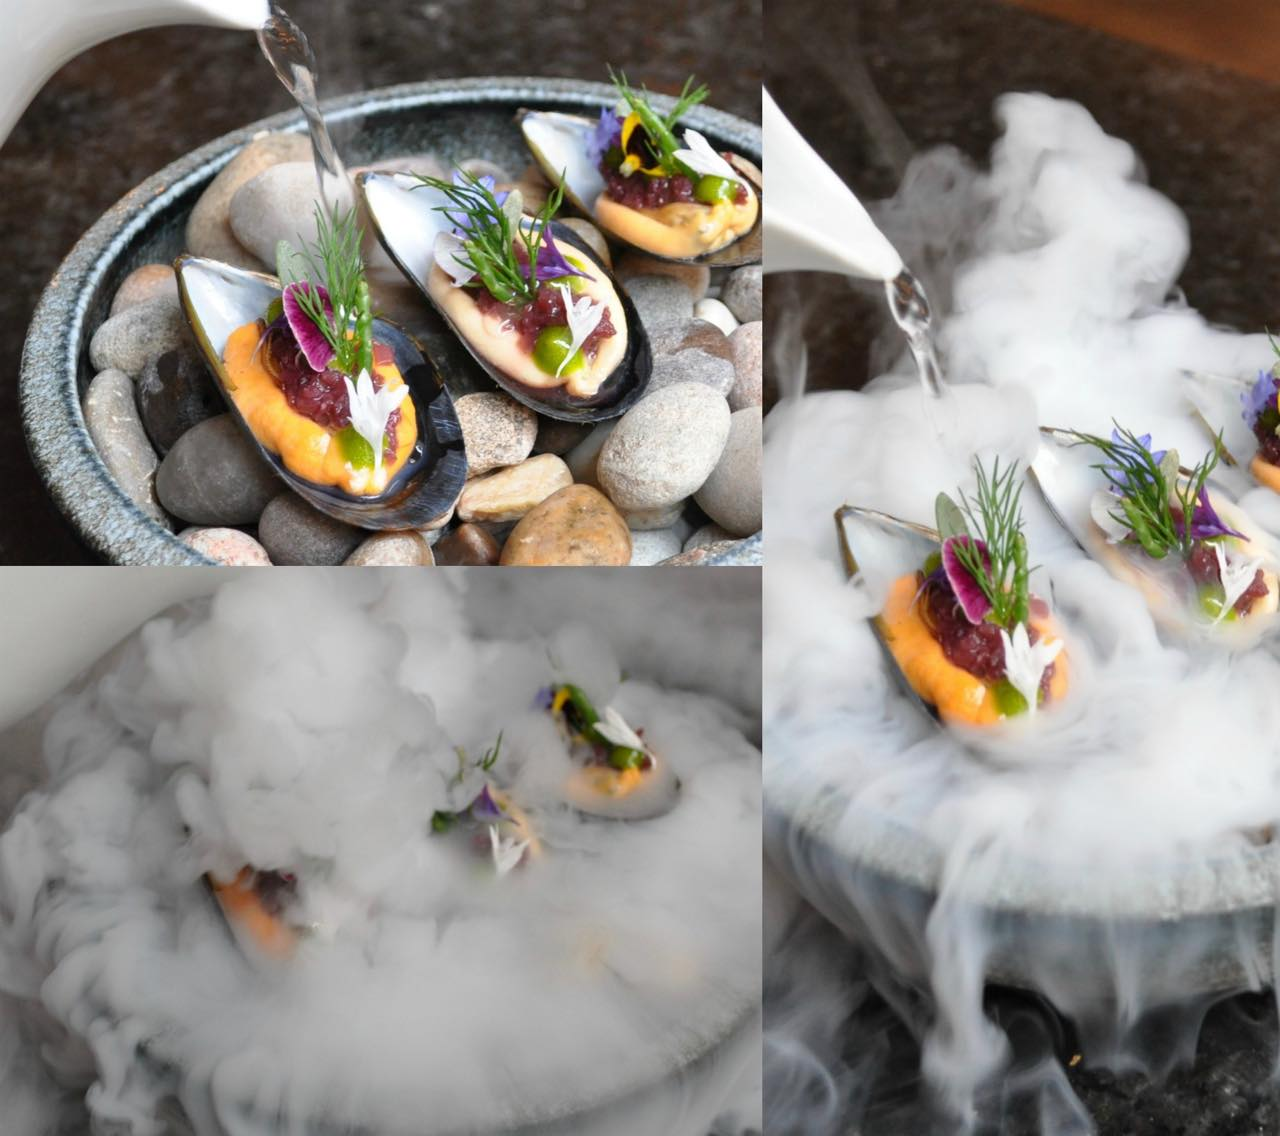 Smoked mussel, red onion, herbs